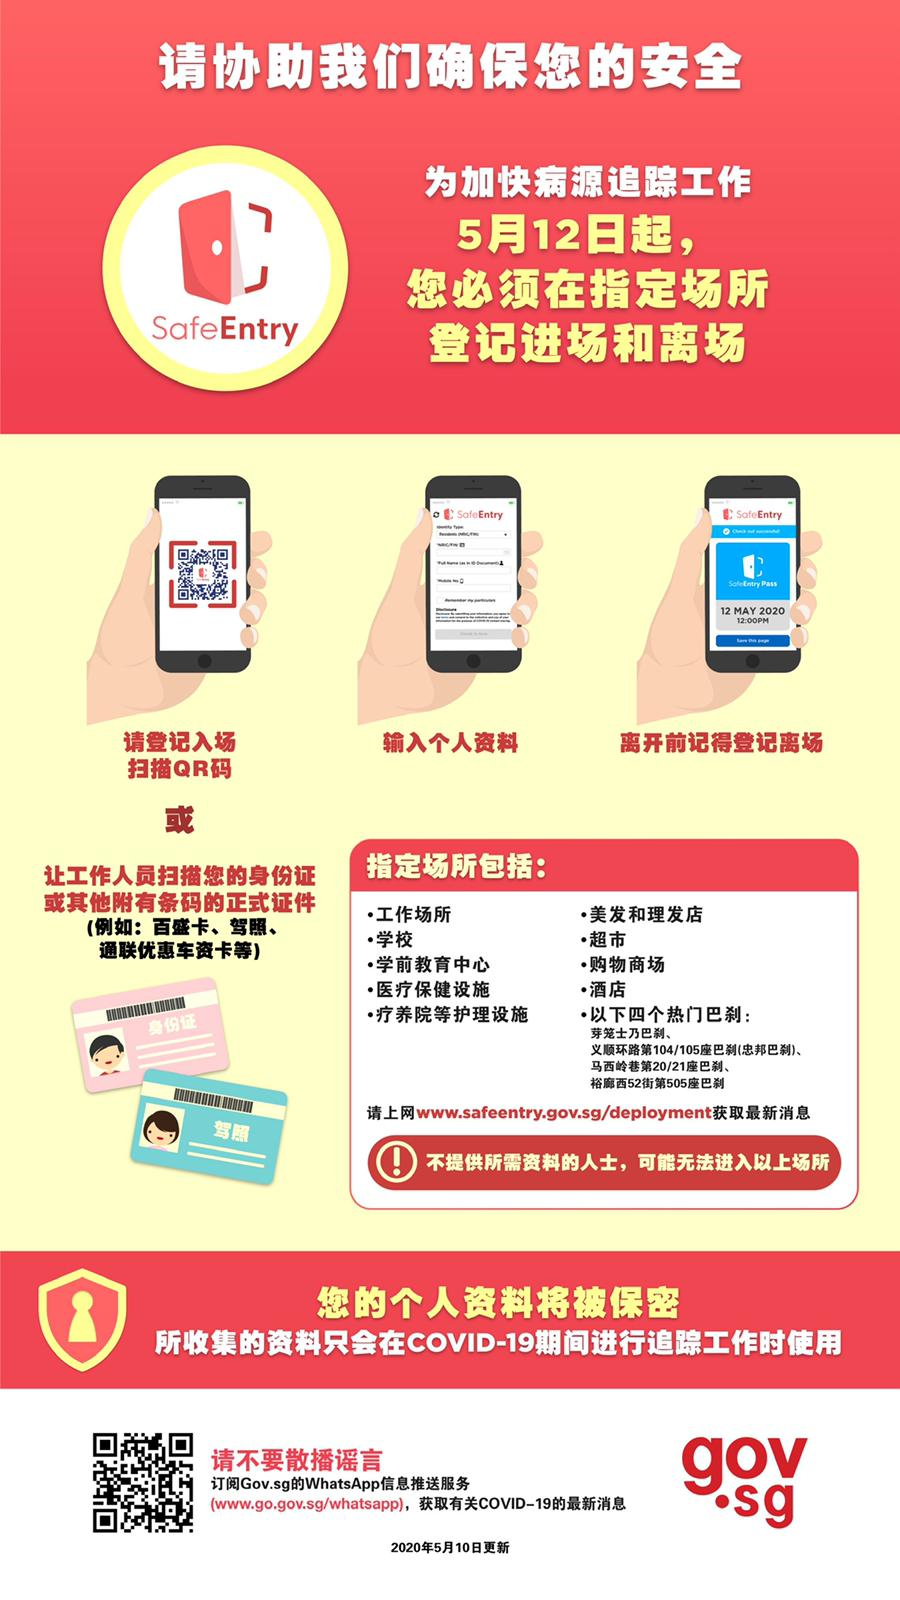 SafeEntry Digital Check-in System - Chinese